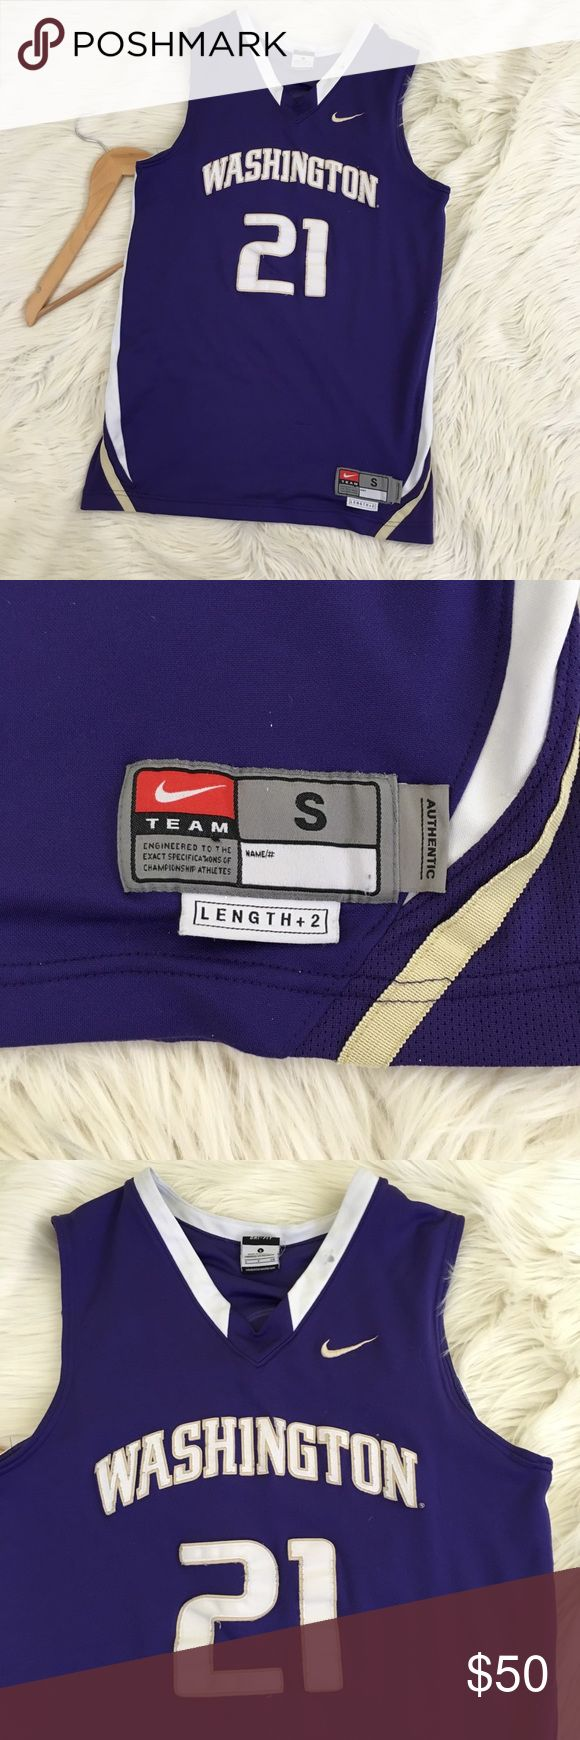 """Washington Huskies Basketball Jersey #21 Nike Team Washington Huskies Nike basketball jersey #21  • Nike • Authentic • Size small w/ length +2 • Purple • Small spot on neck. • Tiny snag. • Otherwise excellent condition.  Length: 28.5"""" Armpit to armpit: 19""""  📌NO lowball offers 📌NO modeling 📌NO trades  Please check out the rest of my closet, I have various brands and ALL different sizes. Some new with tags, others in excellent condition😊 Nike Shirts Tank Tops"""